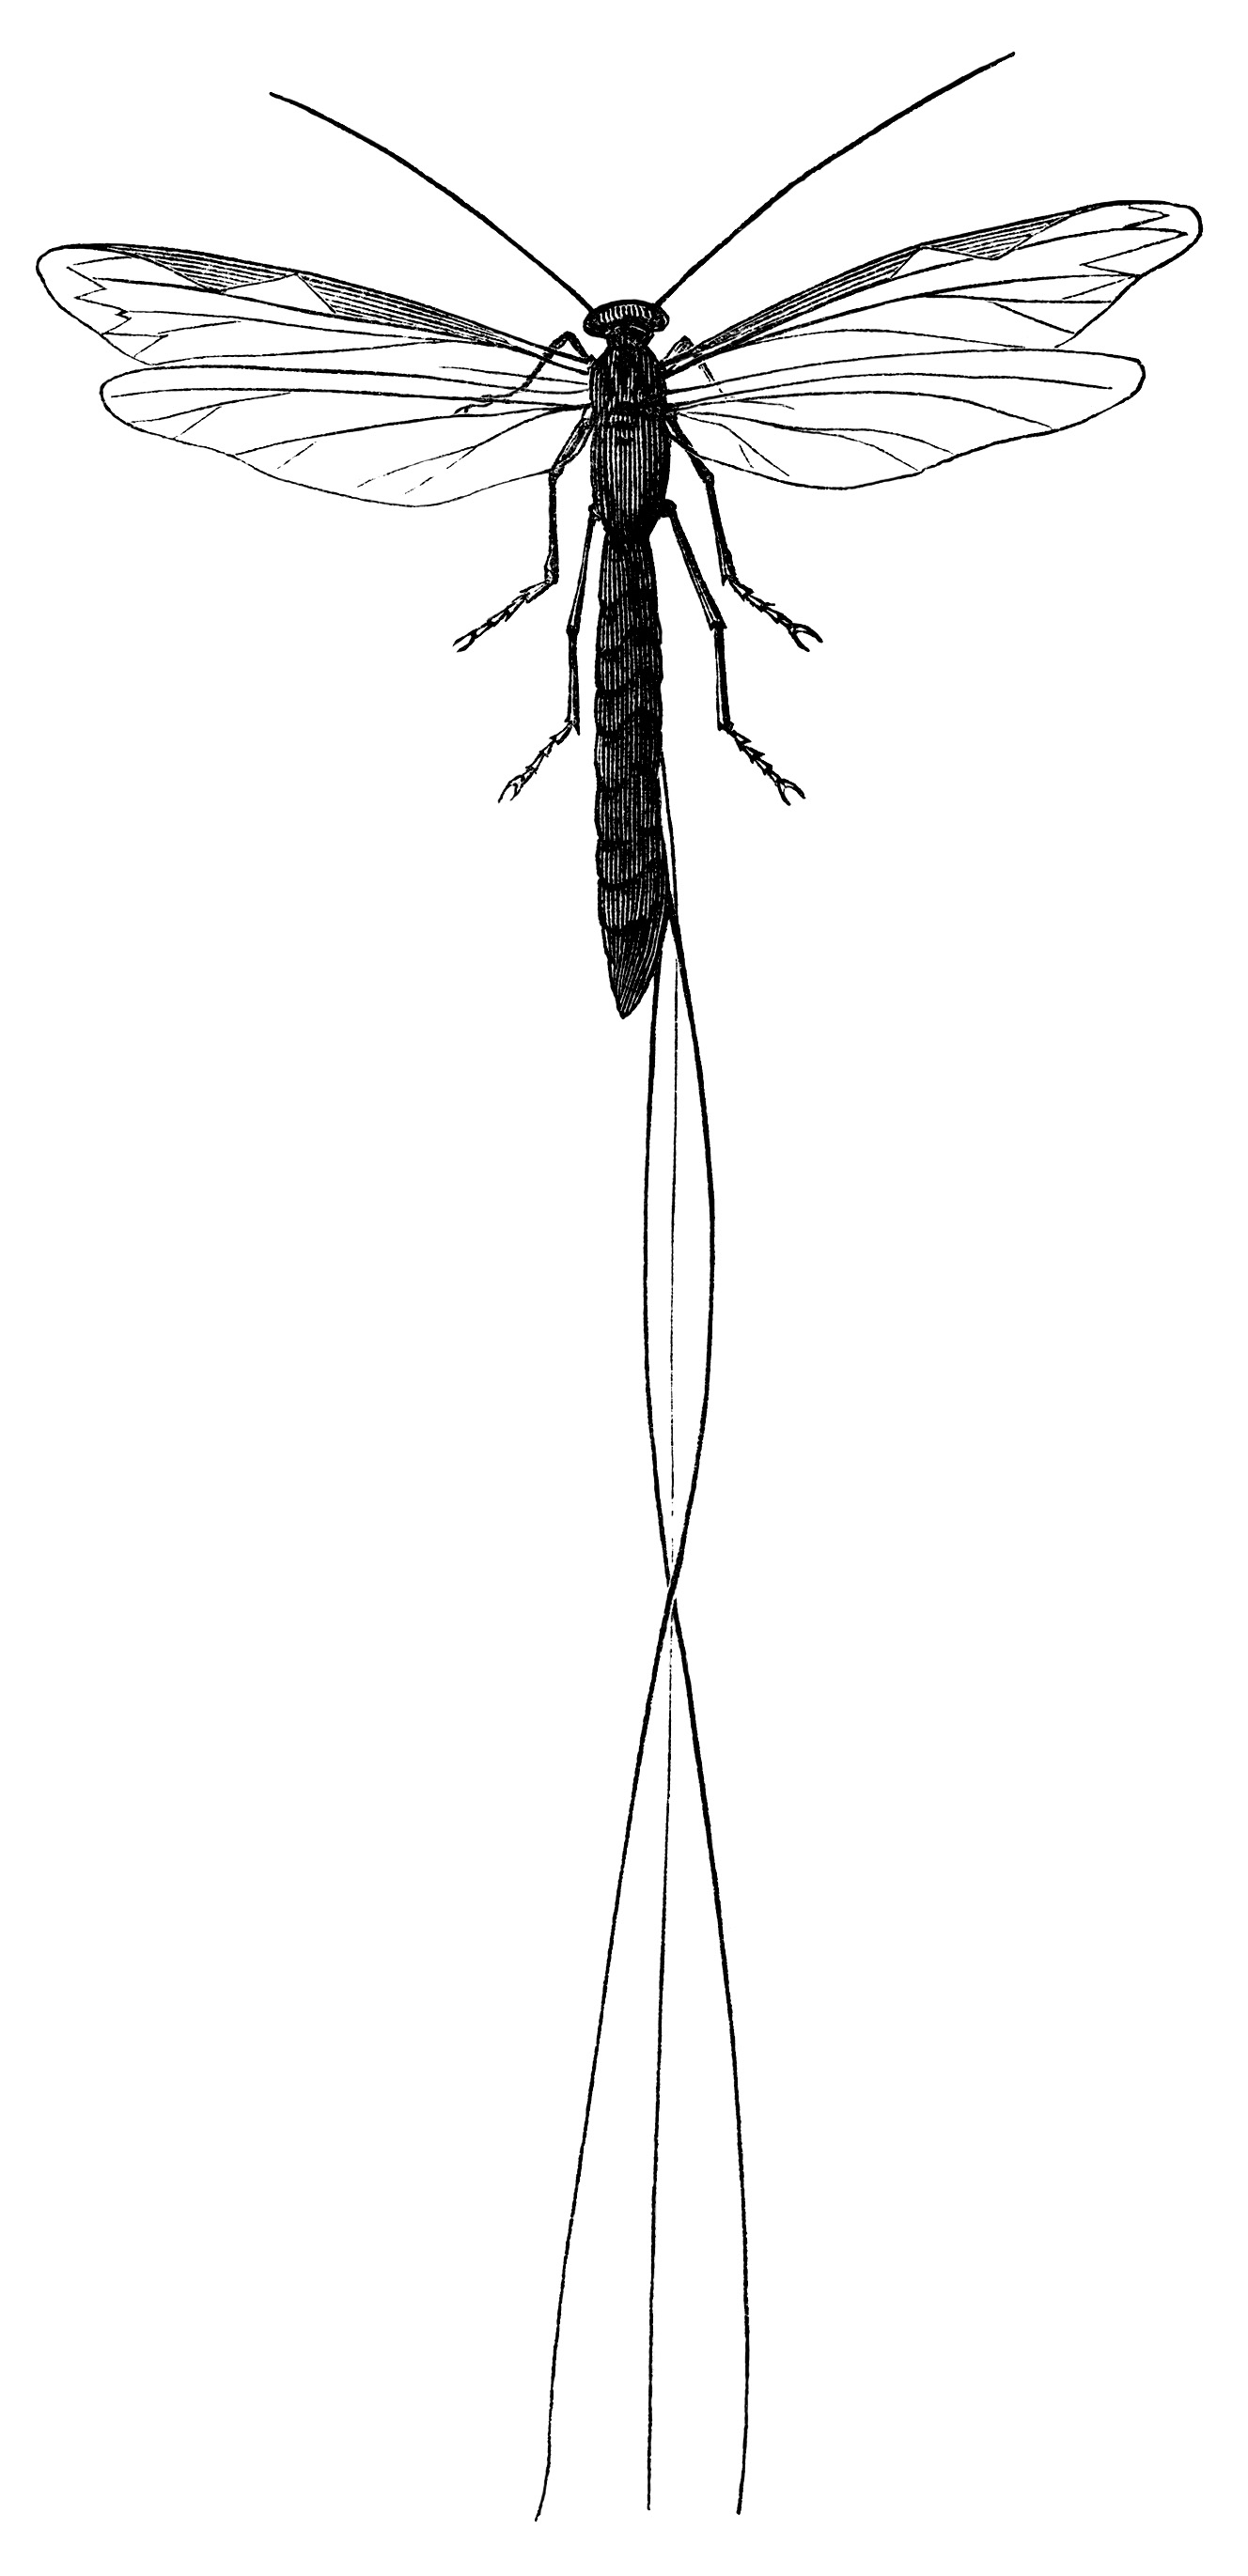 long tailed ichneumon fly, vintage dragonfly clipart, black and white clip art, membrane winged insect illustration, fly graphics free